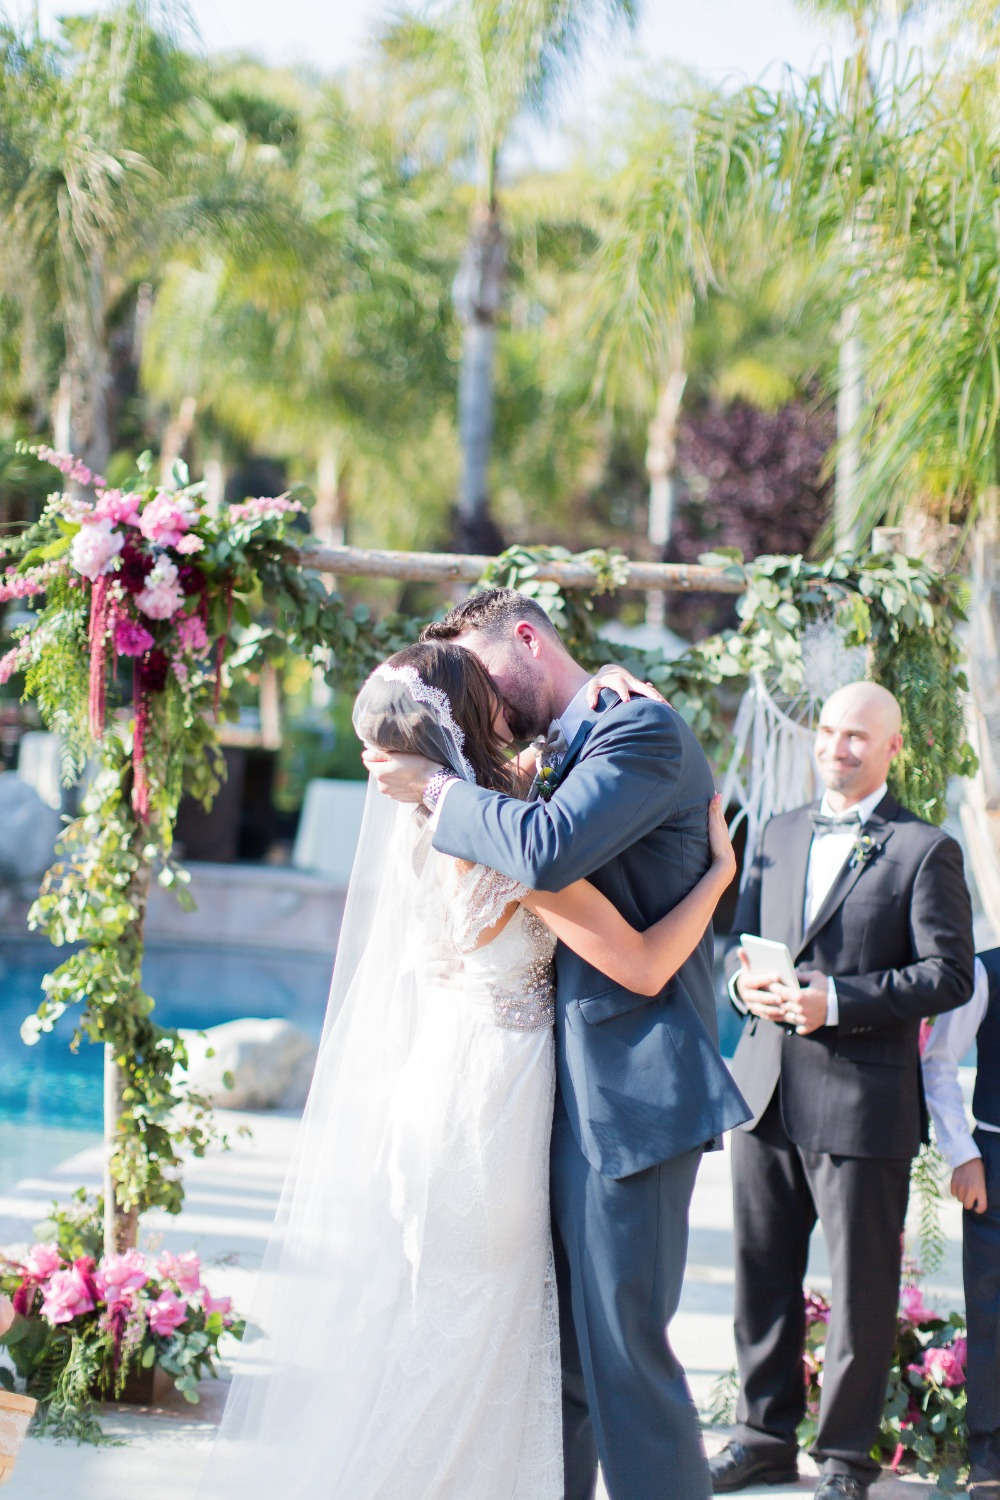 love was in the air at this dreamy bohemian chic outdoor wedding